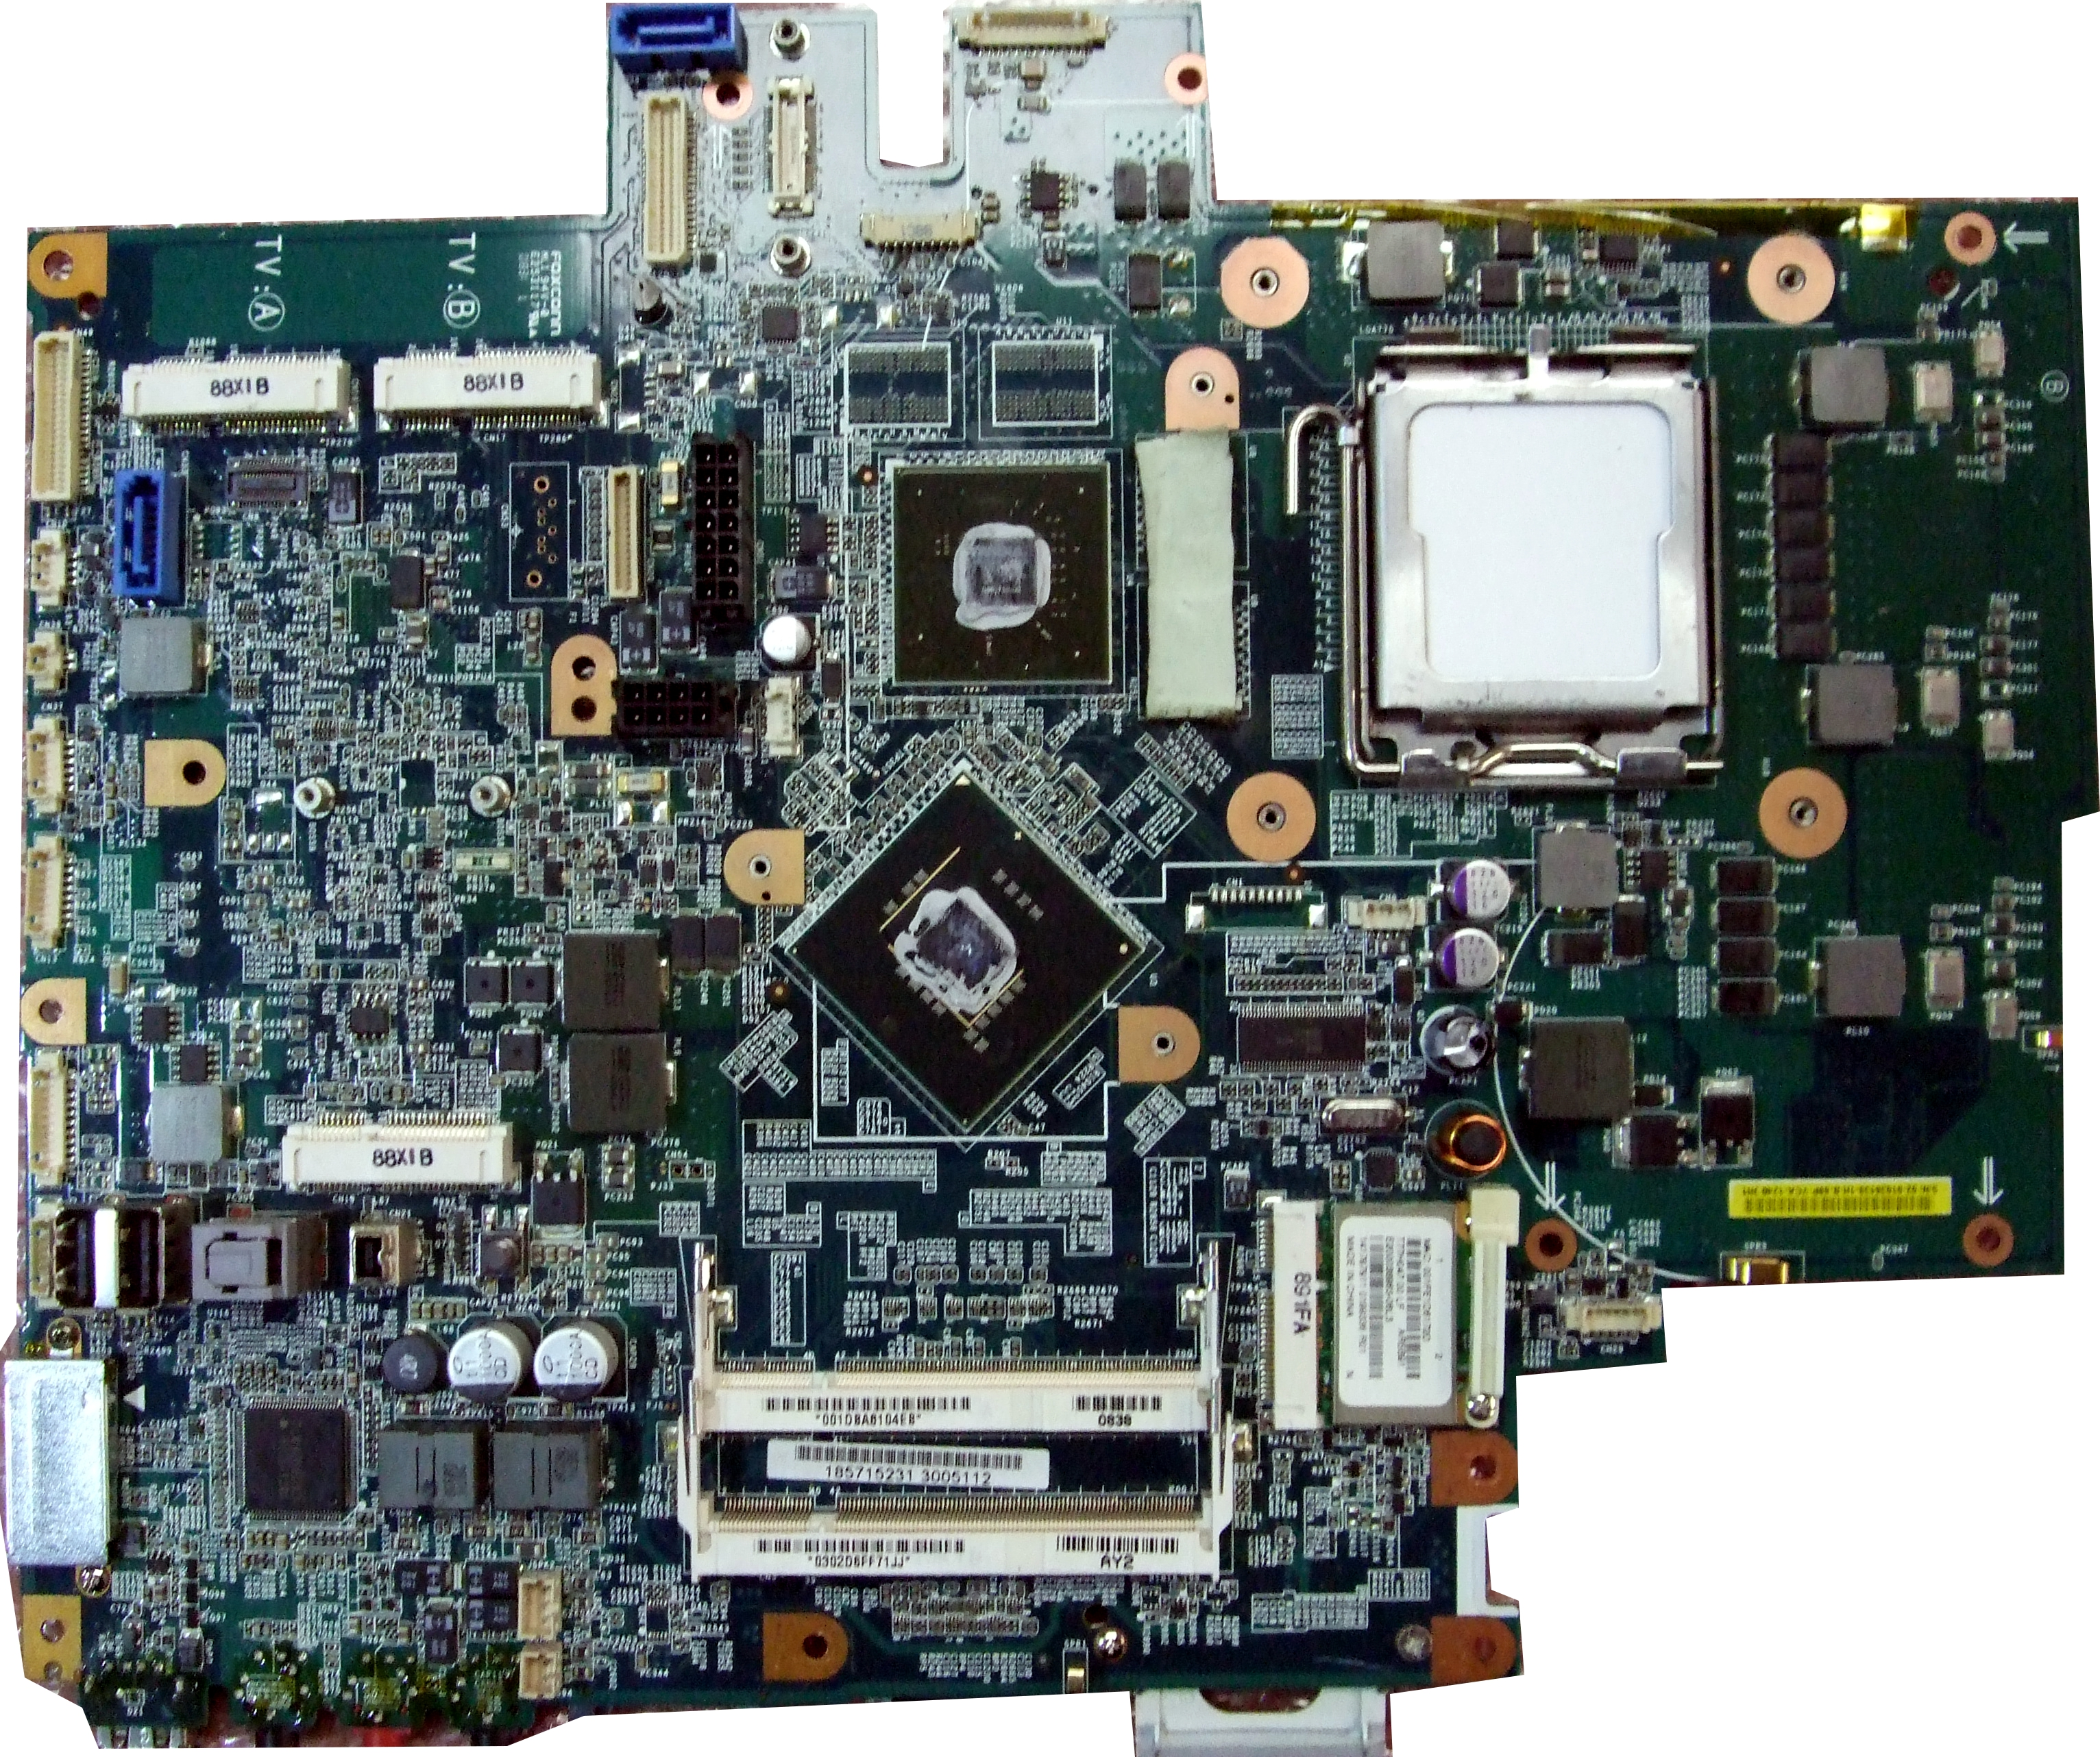 SONY M820/M830 MBX-199 Motherboard IP-008BJ02-8011 IRX-4440 Rev 1.1 Enlarged Preview